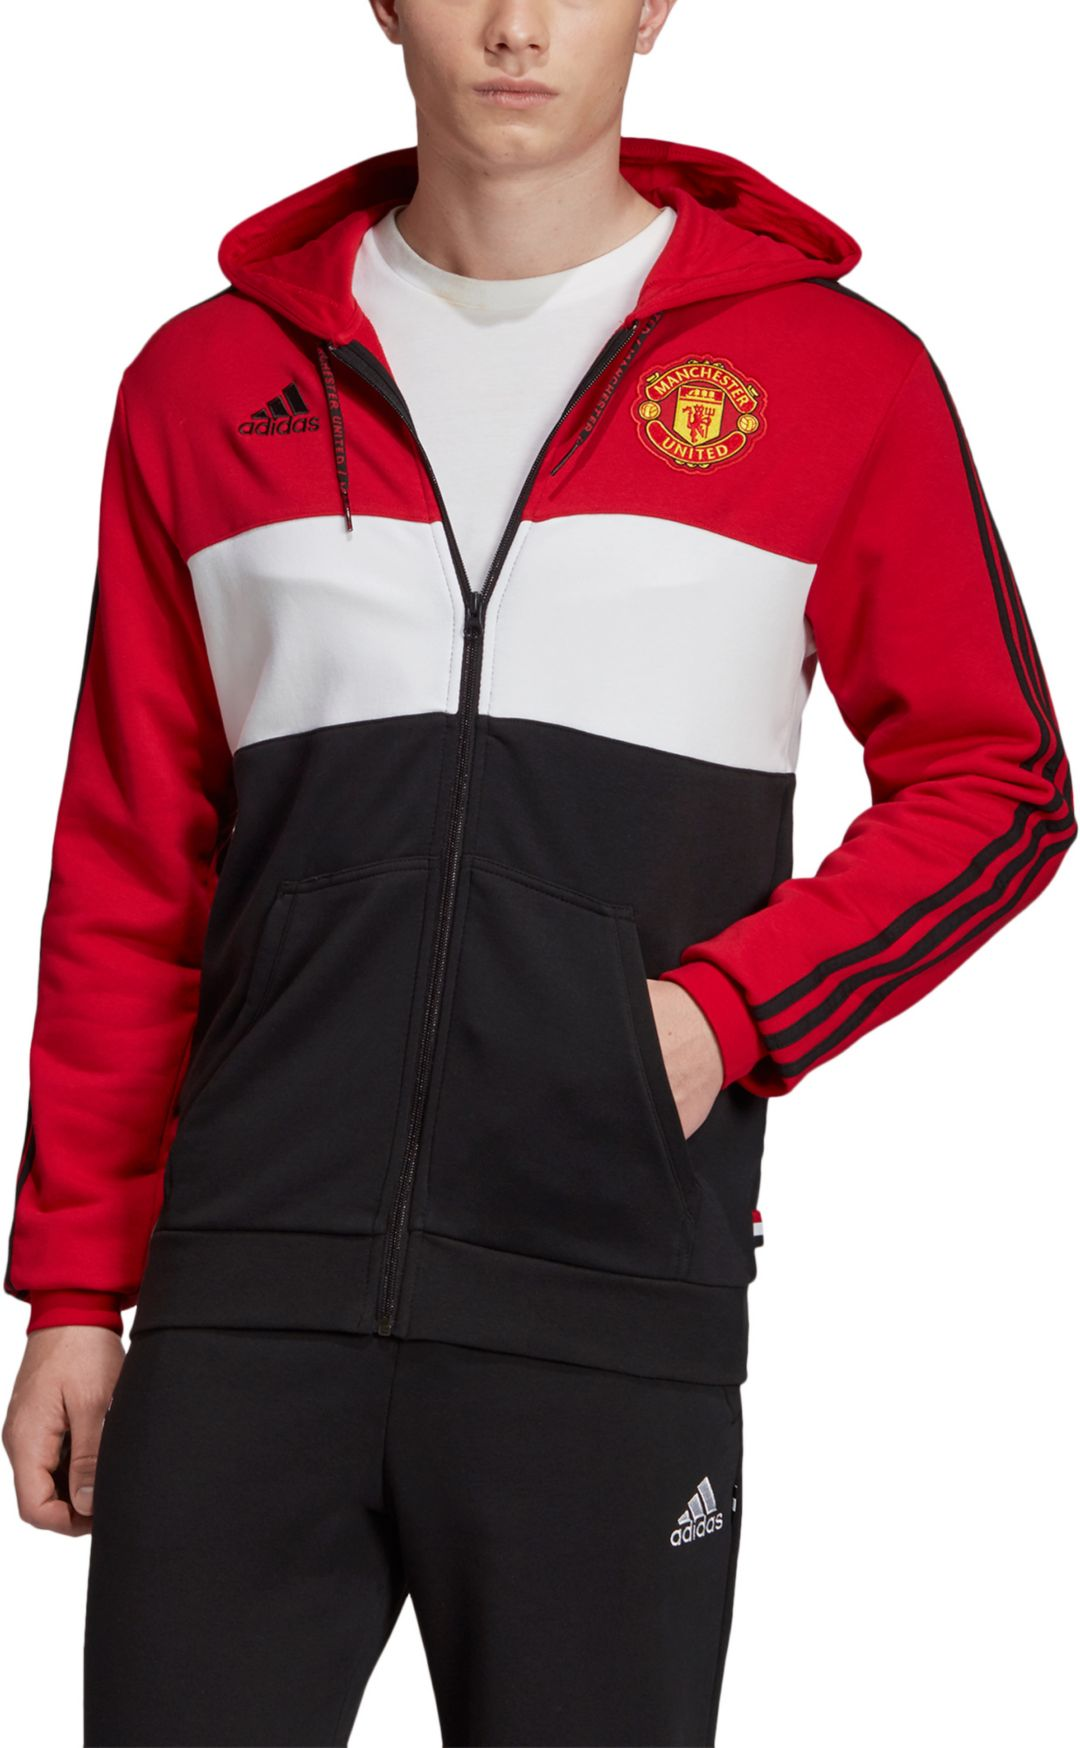 online store 3a96c 58fa4 adidas Men's Manchester United Crest Red Full-Zip Hoodie